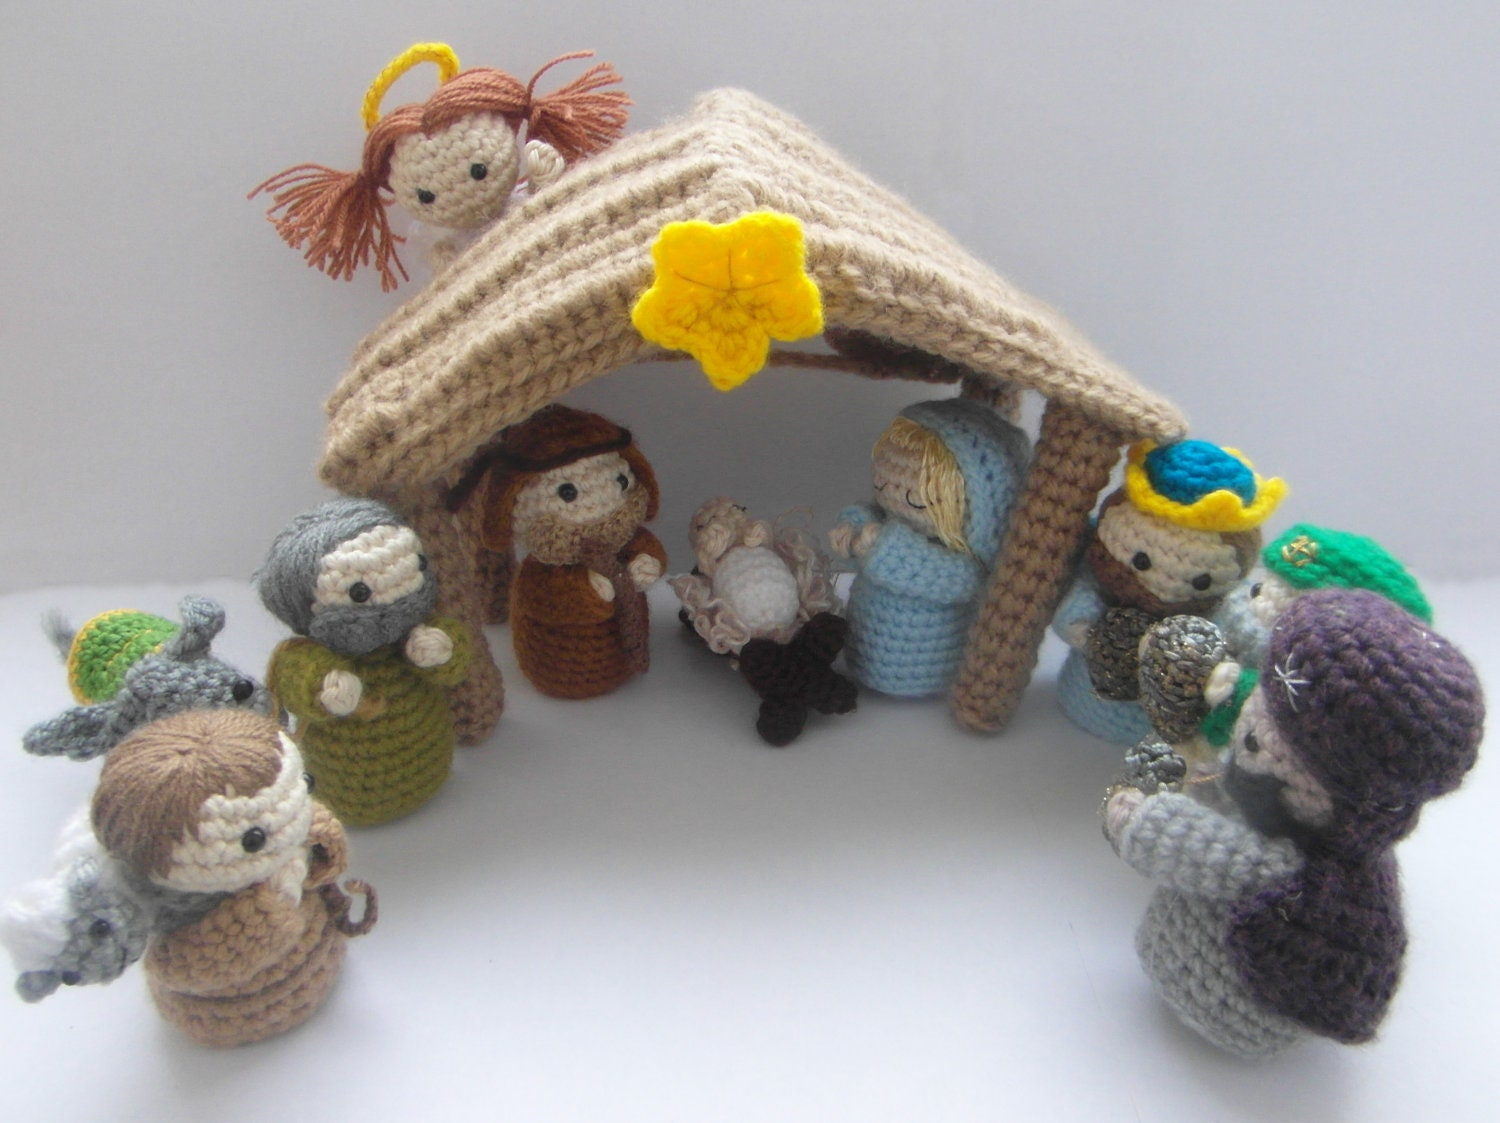 Crochet Nativity Scene Free Pattern New Calendar ...